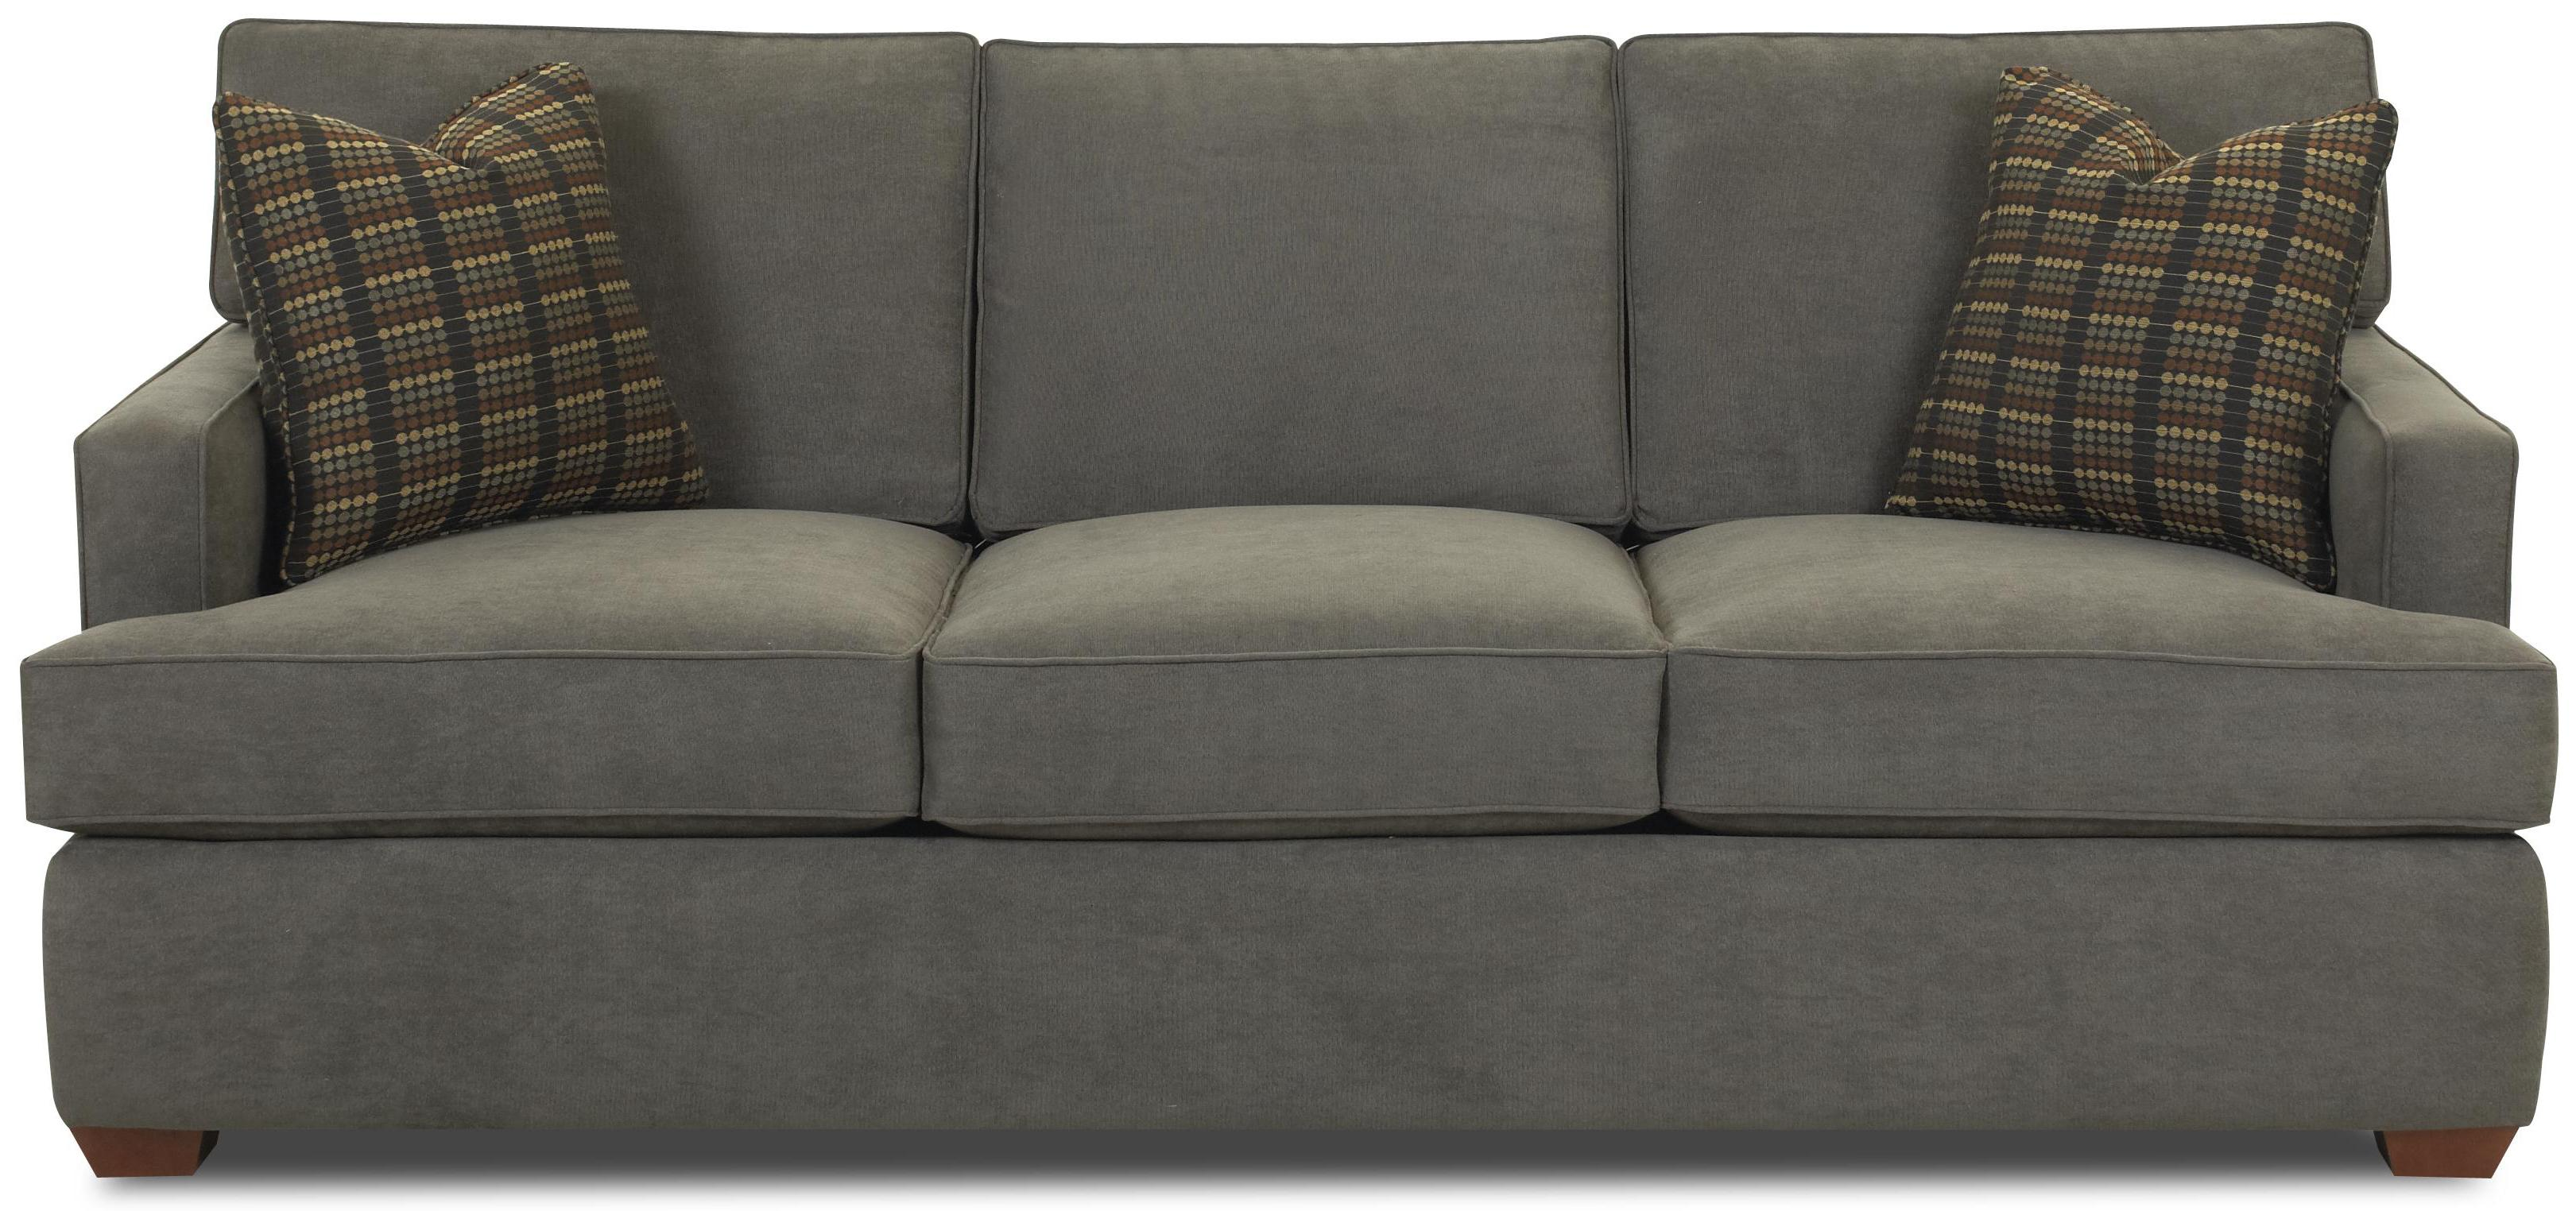 Contemporary Sofa with Track Arms